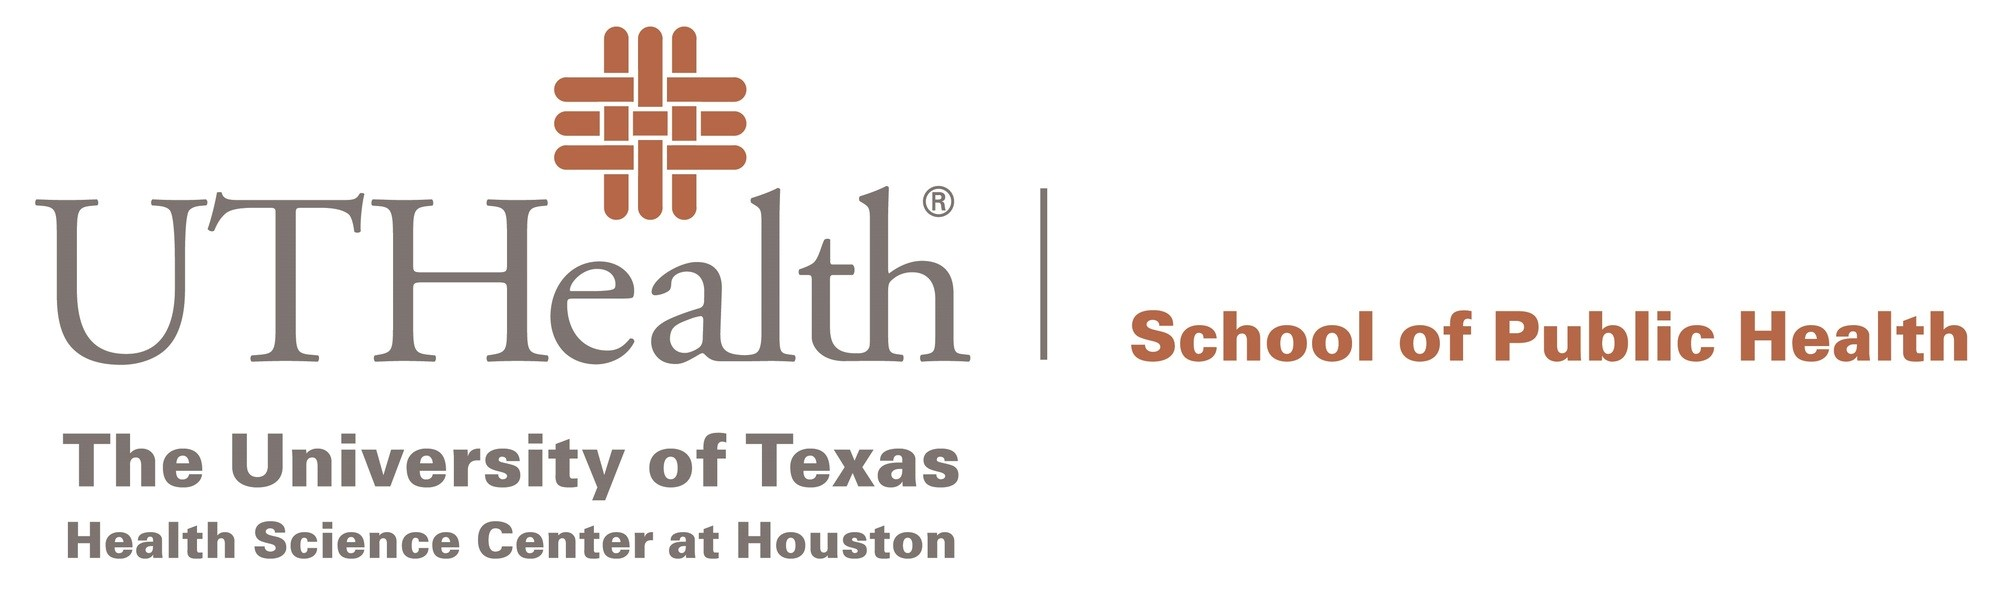 University of Texas Health logo